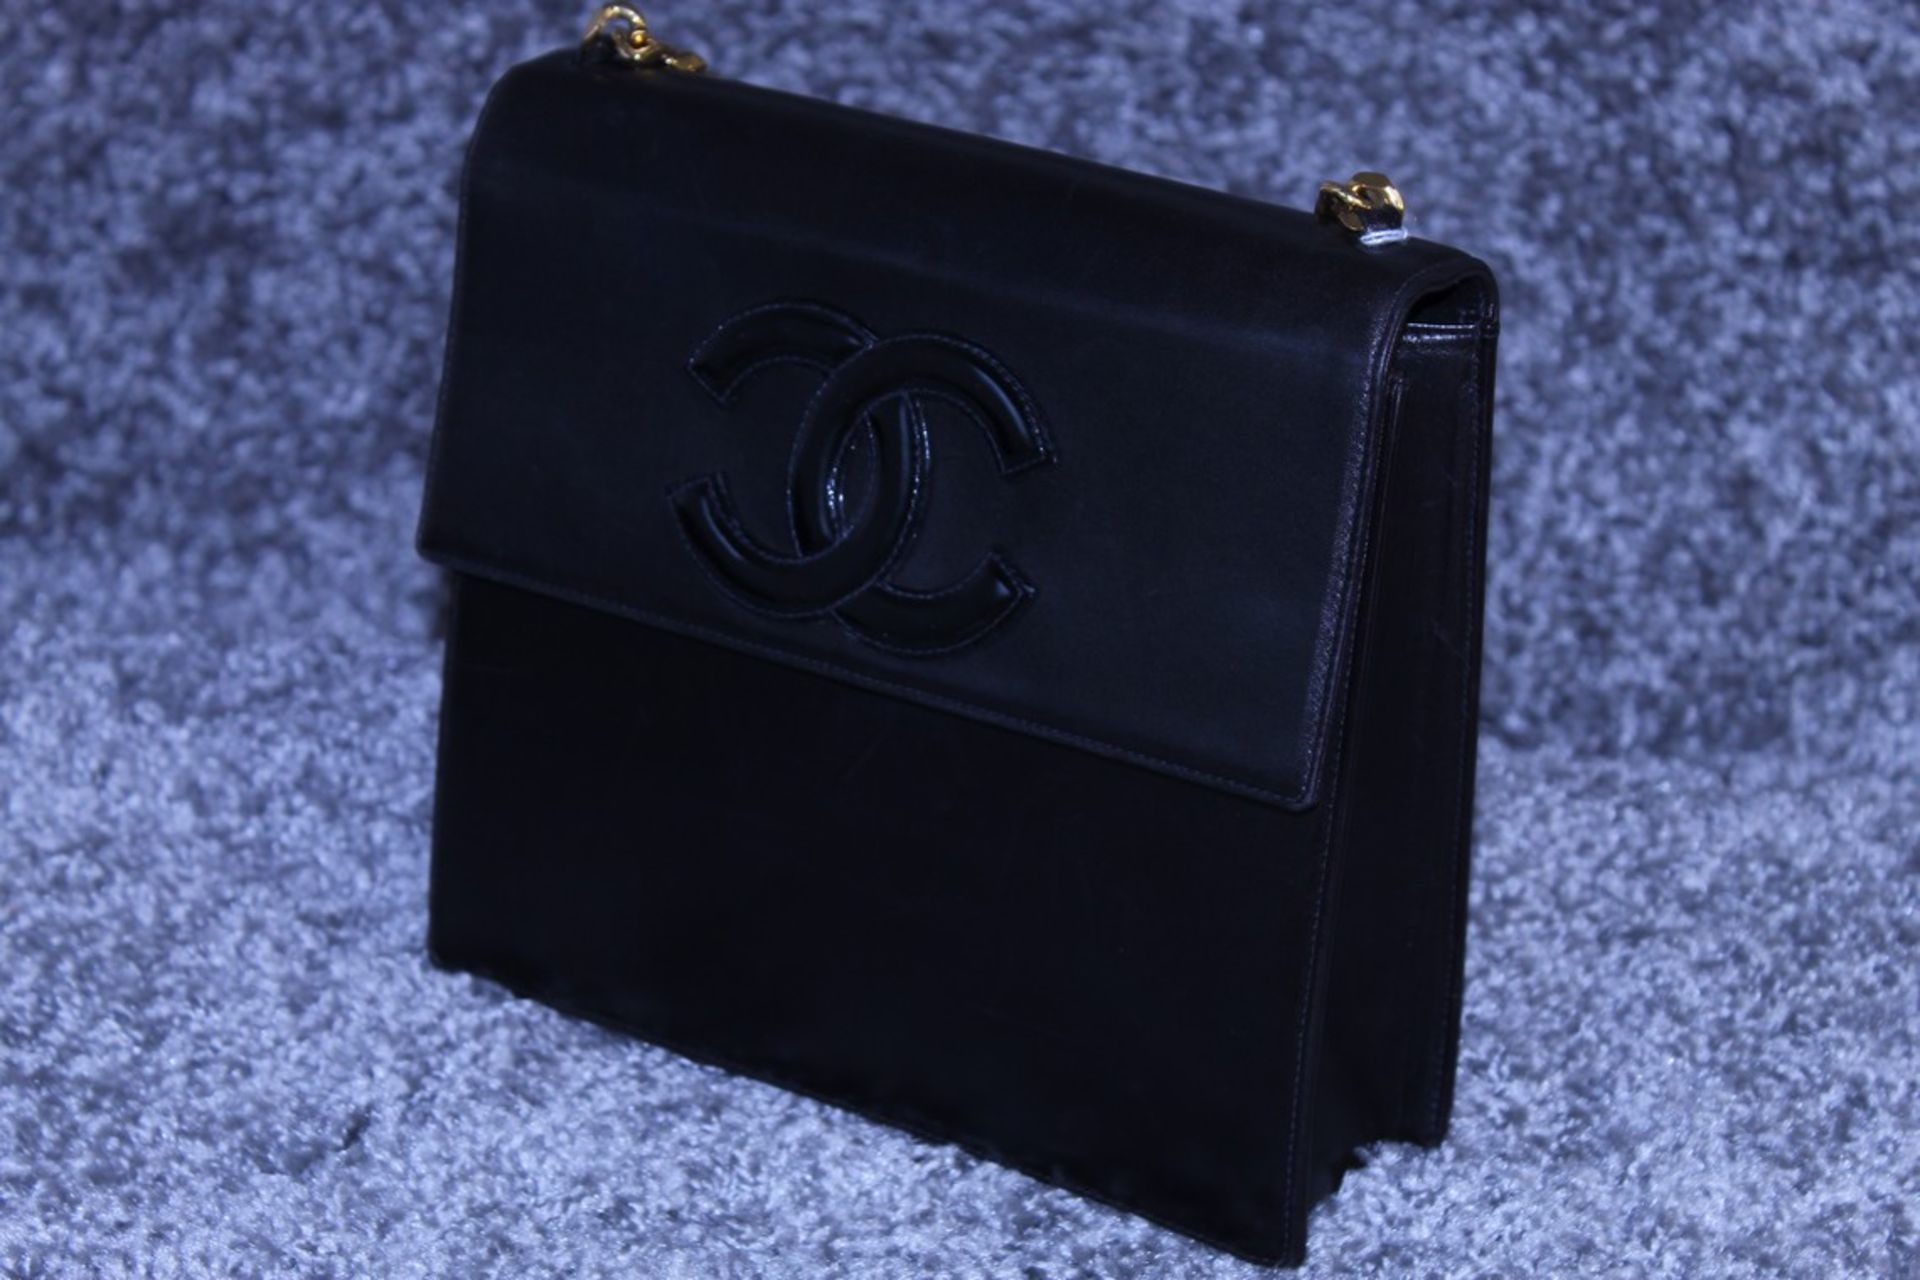 RRP £2000 Chanel Tall Logo Flap Chain Tote Shoulder Bag In Black Leather With Gold Chain Handles - Image 3 of 3